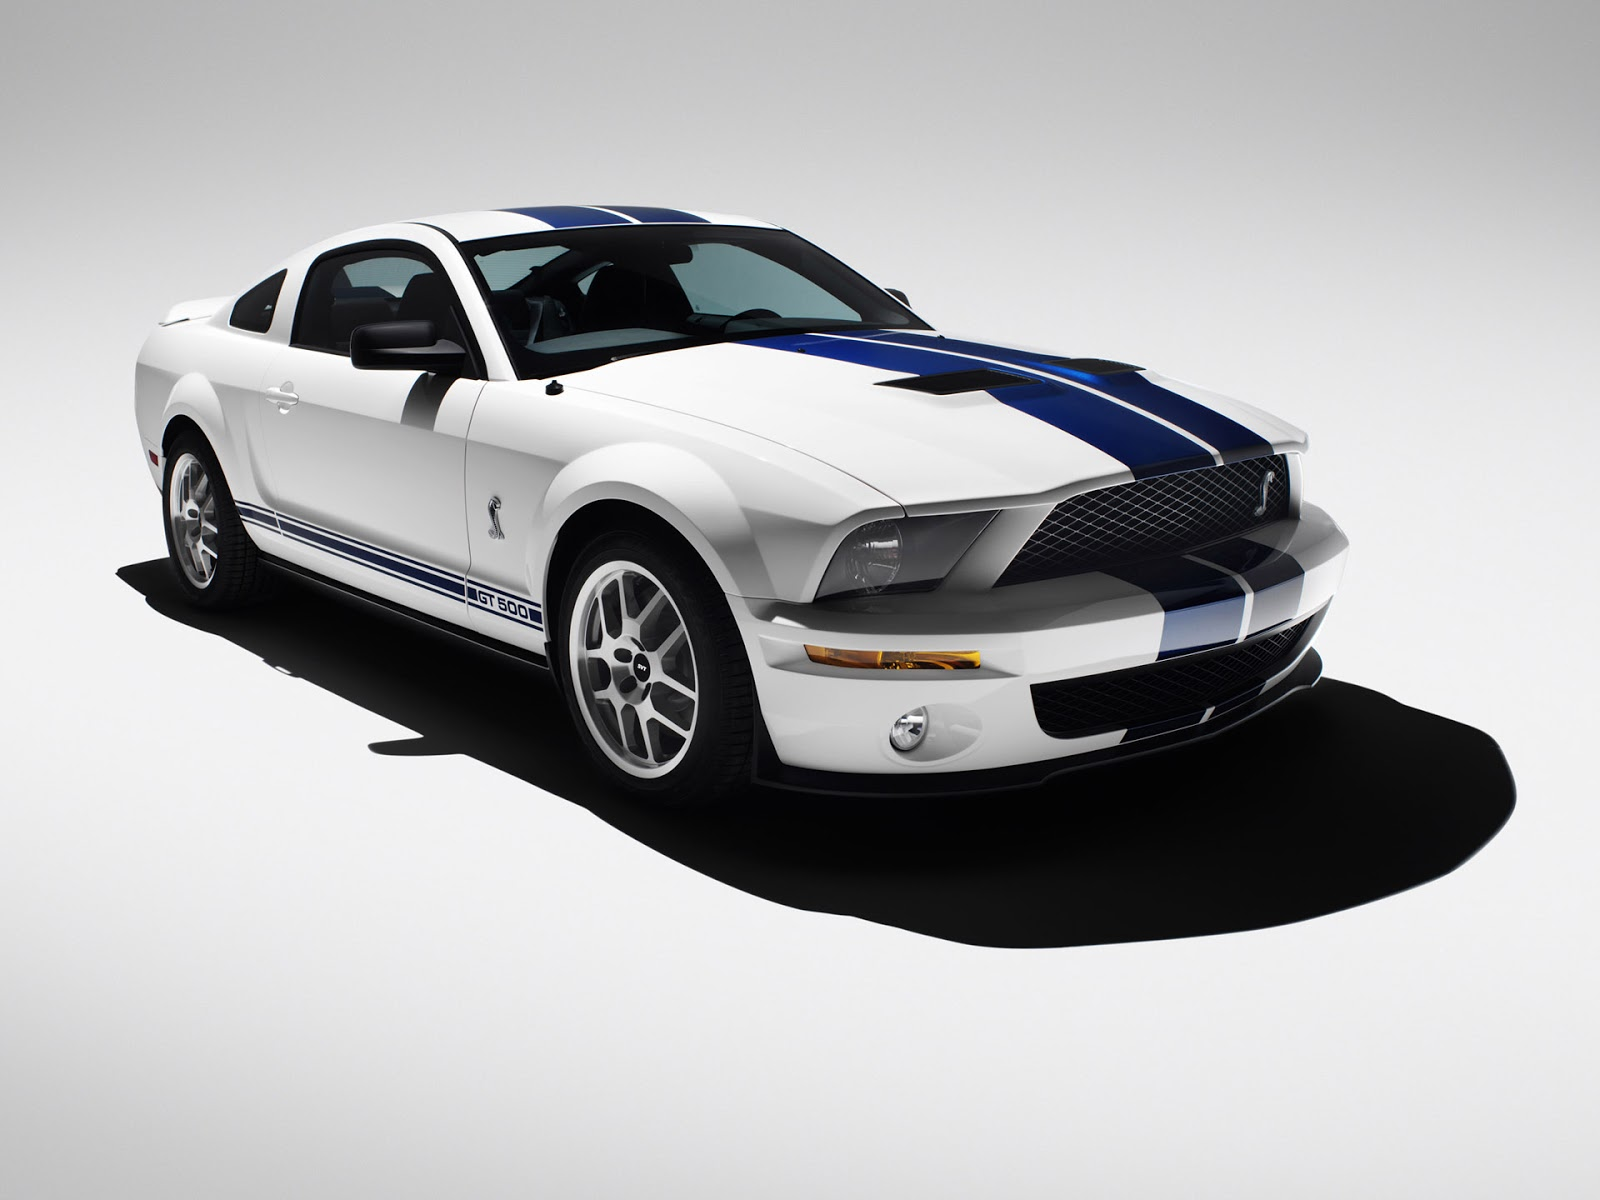 2007 Ford Shelby Cobra Gt 500 Ford Is My World